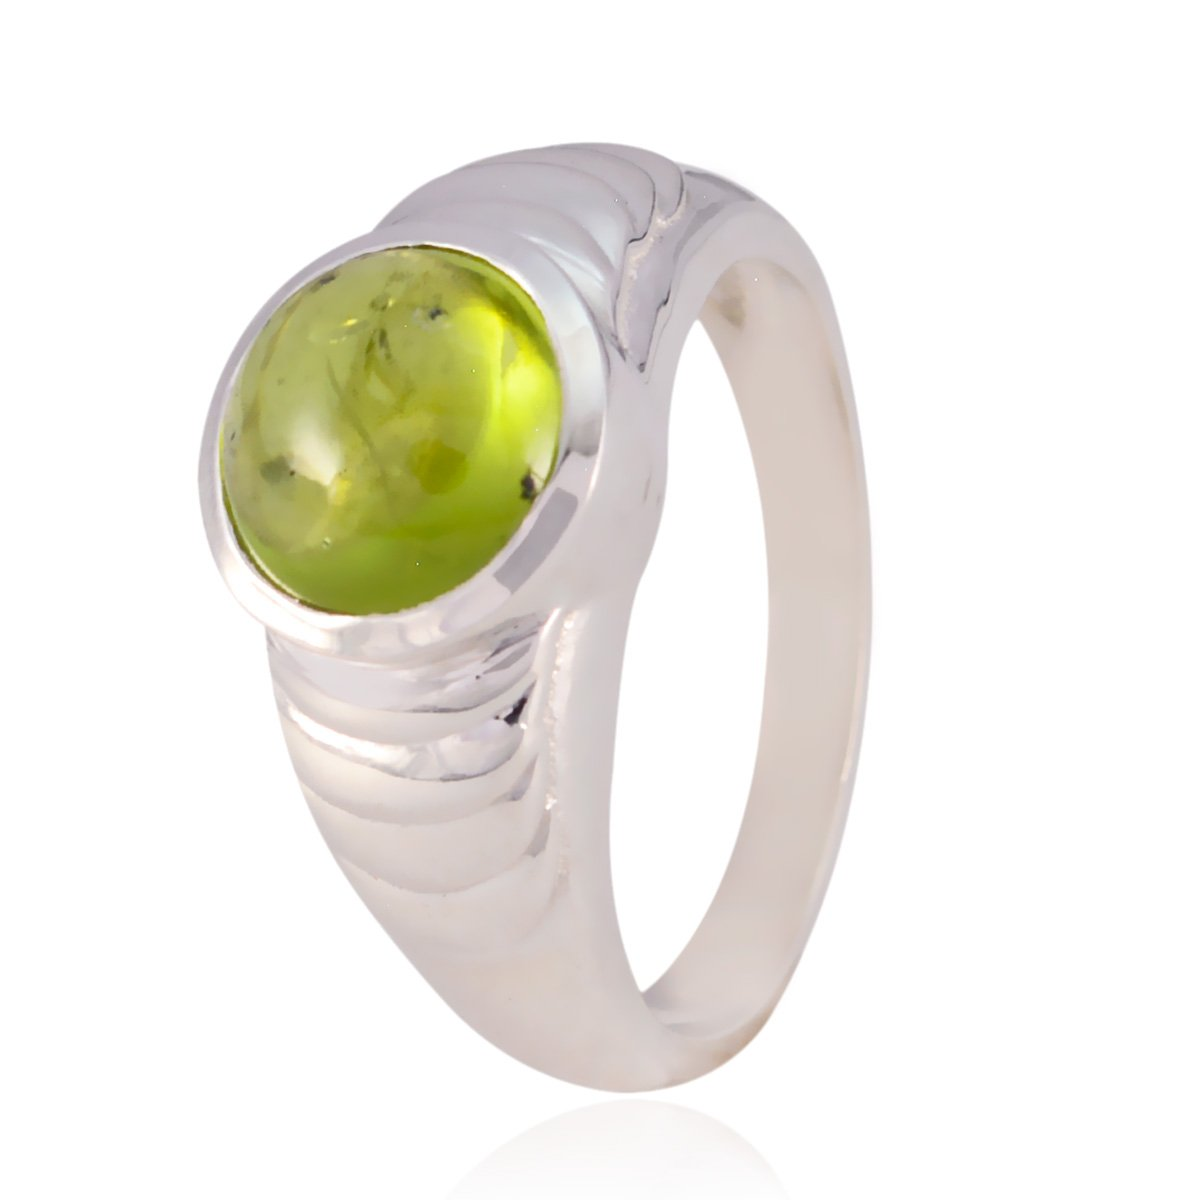 925 Silver Green Peridot Nice Gemstone Ring jents Jewelry Items Gift for mom raw Stone Ring Nice Gemstone Round cabochon Peridot Rings